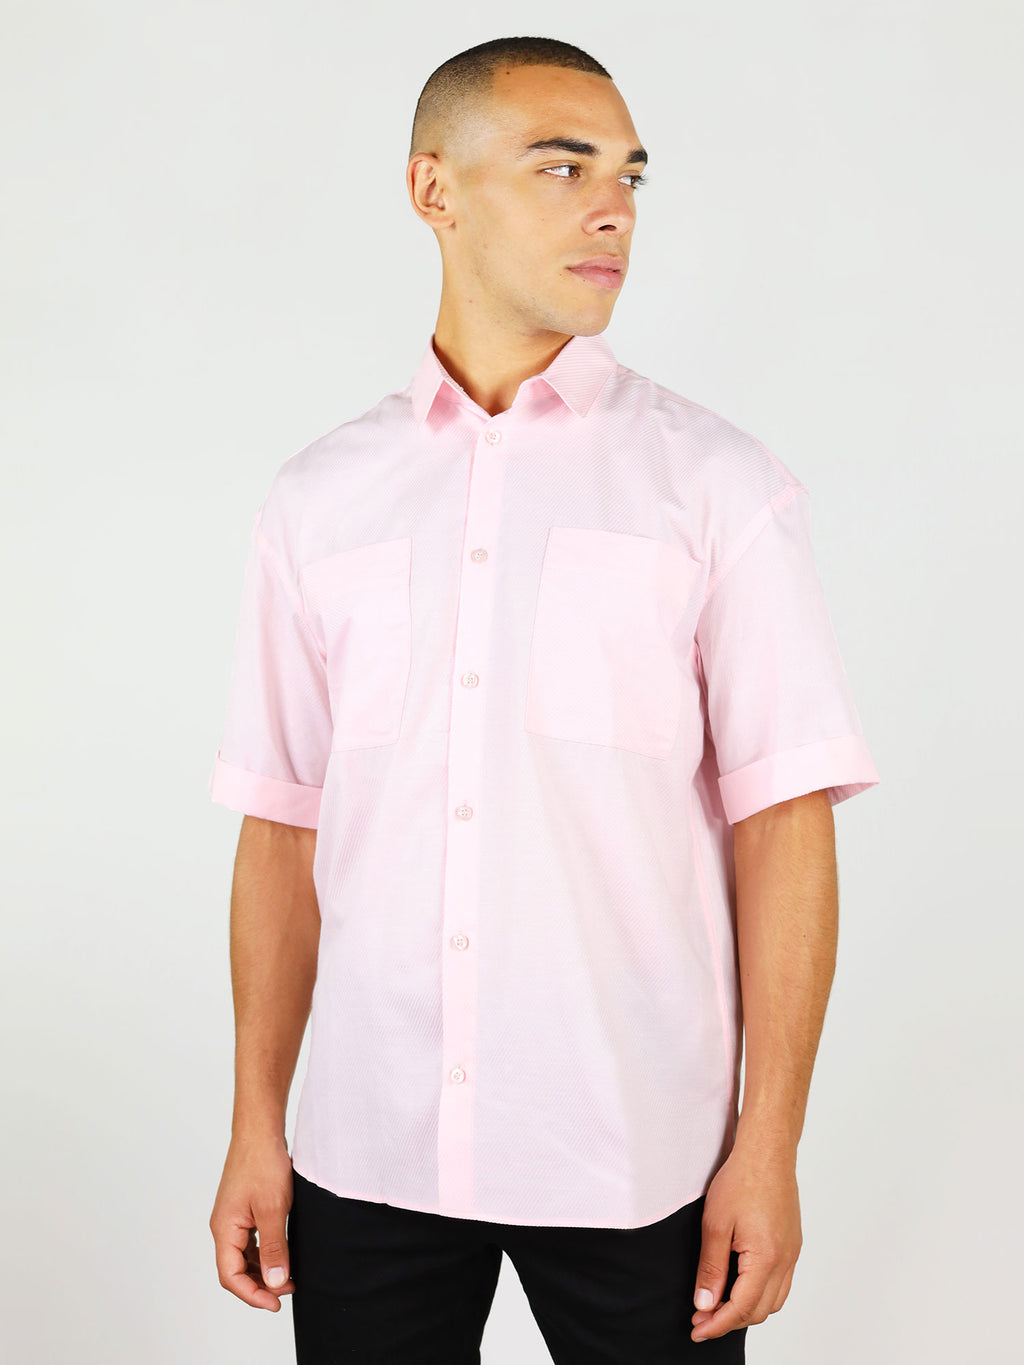 Pink menswear shirt with short sleeves by blonde gone rogue